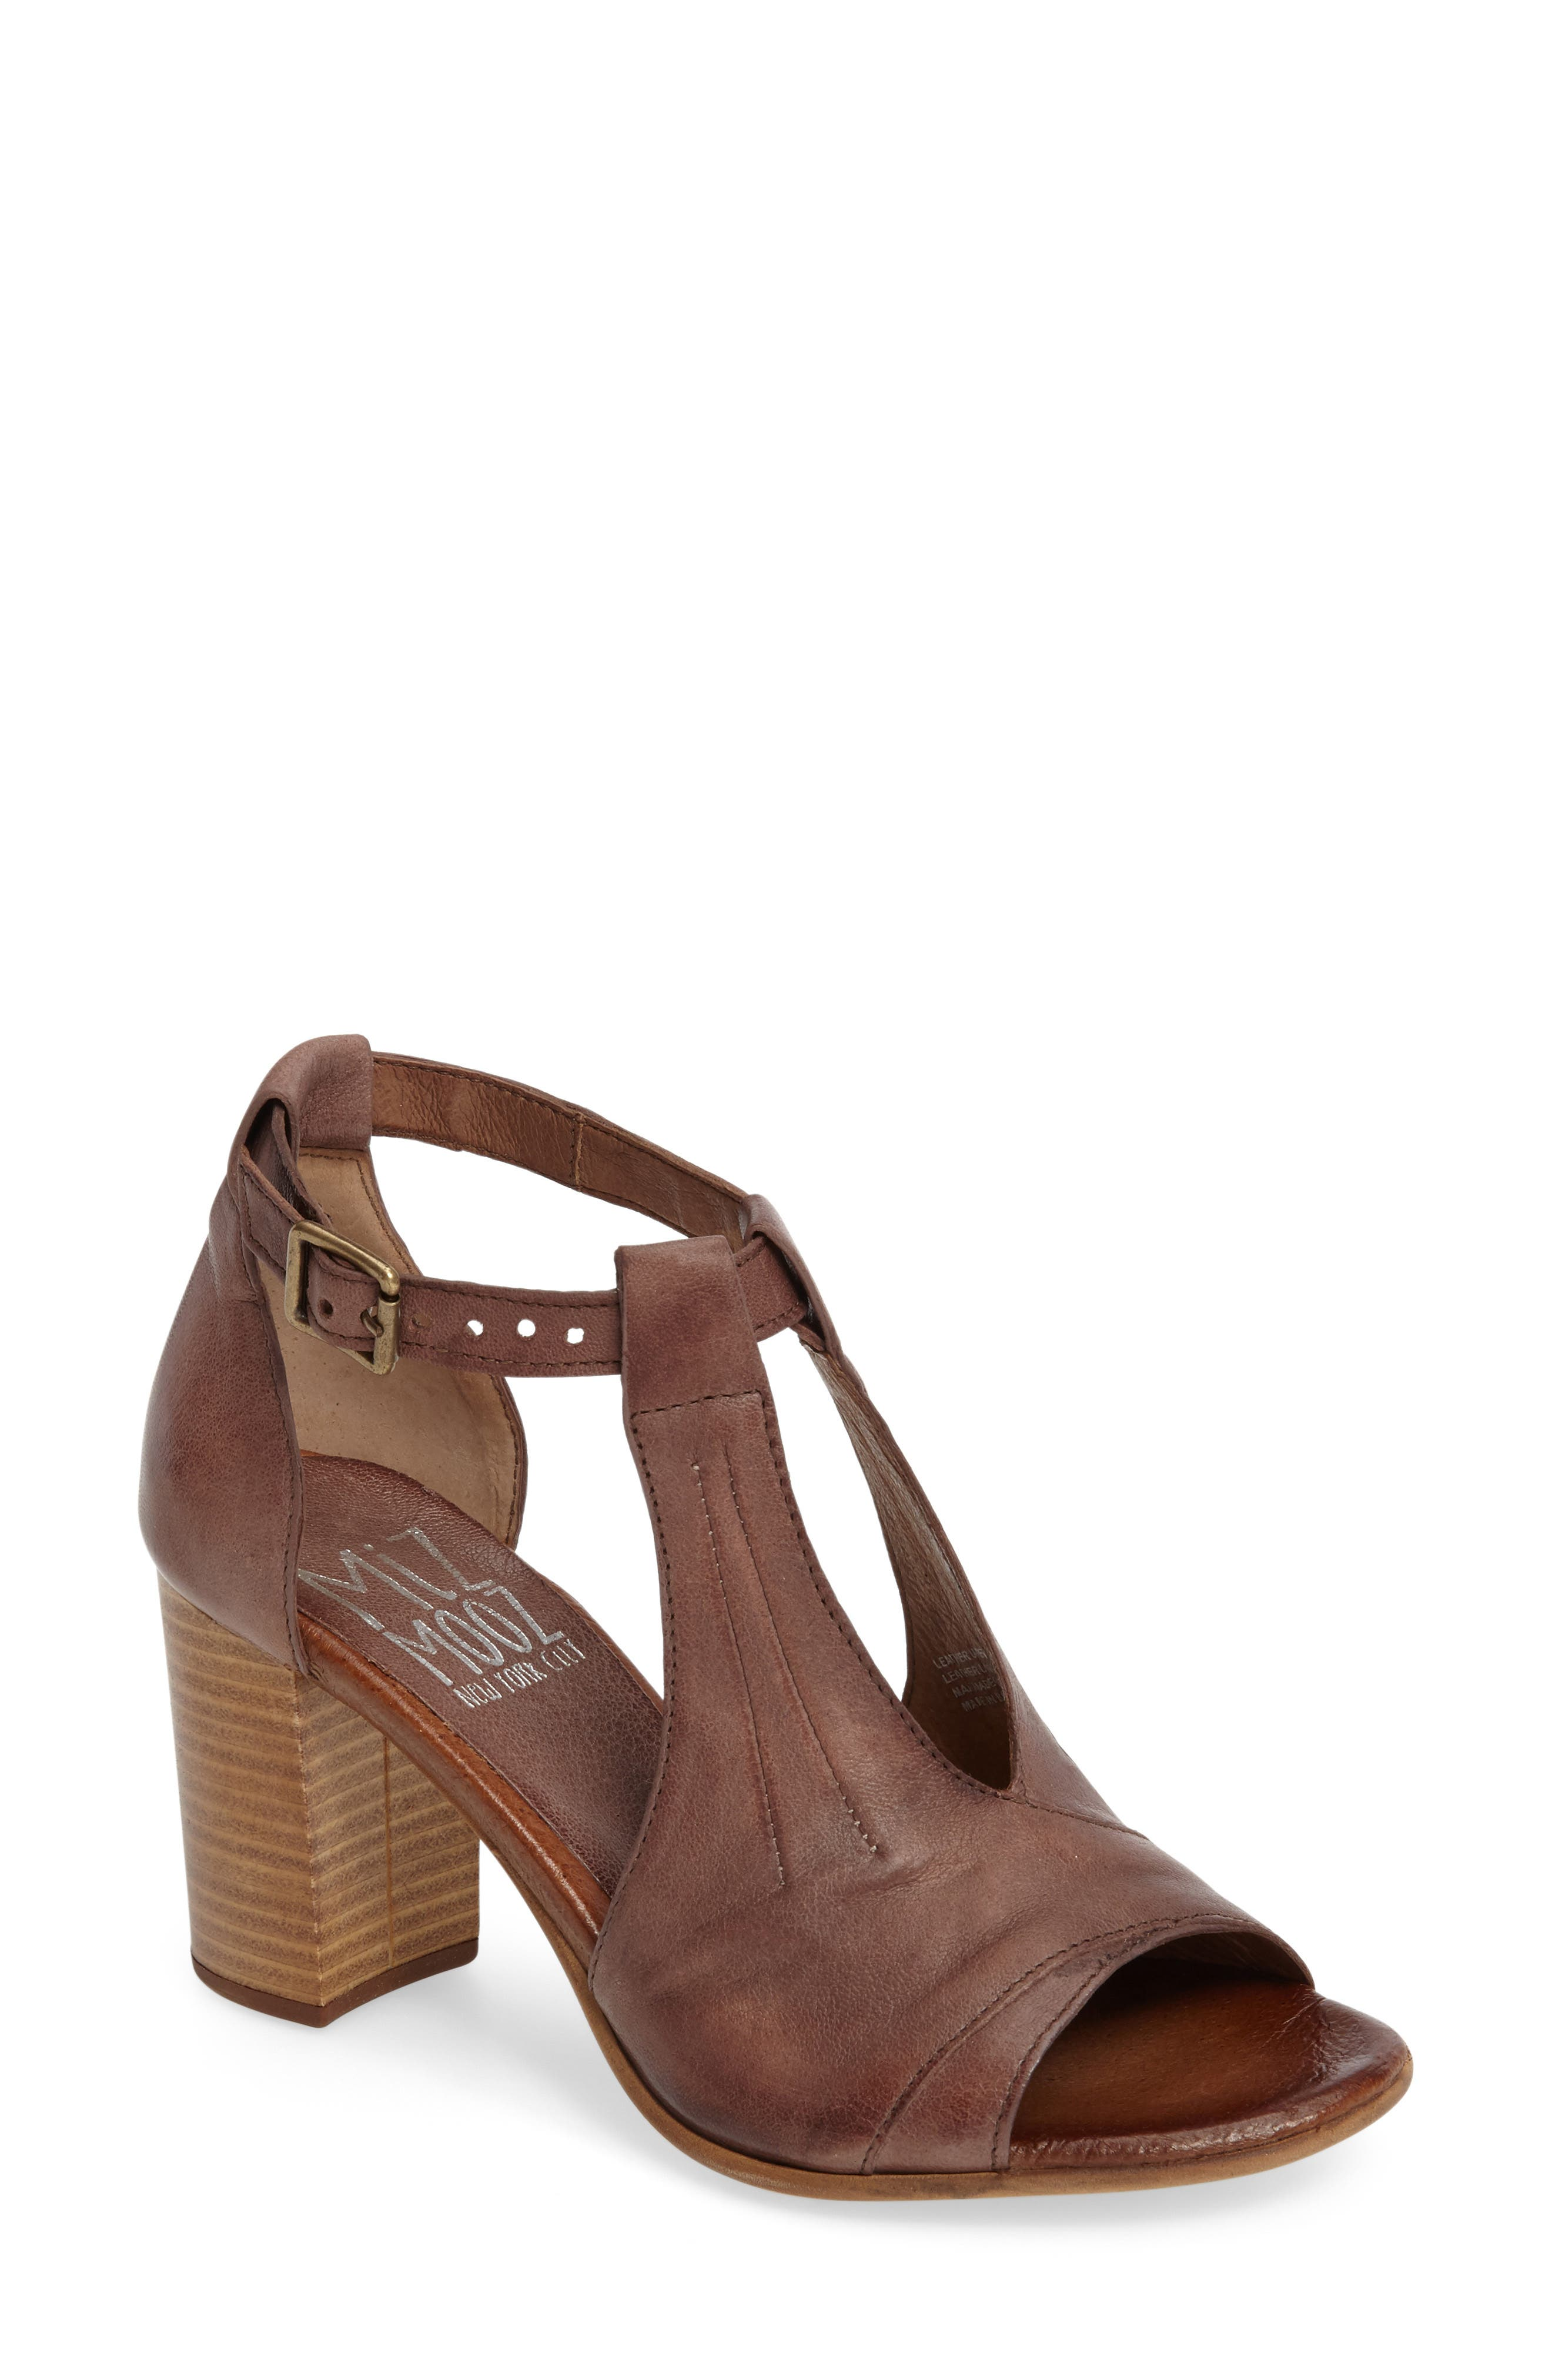 Alternate Image 1 Selected - Miz Mooz Savannah T-Strap Strap Sandal (Women)